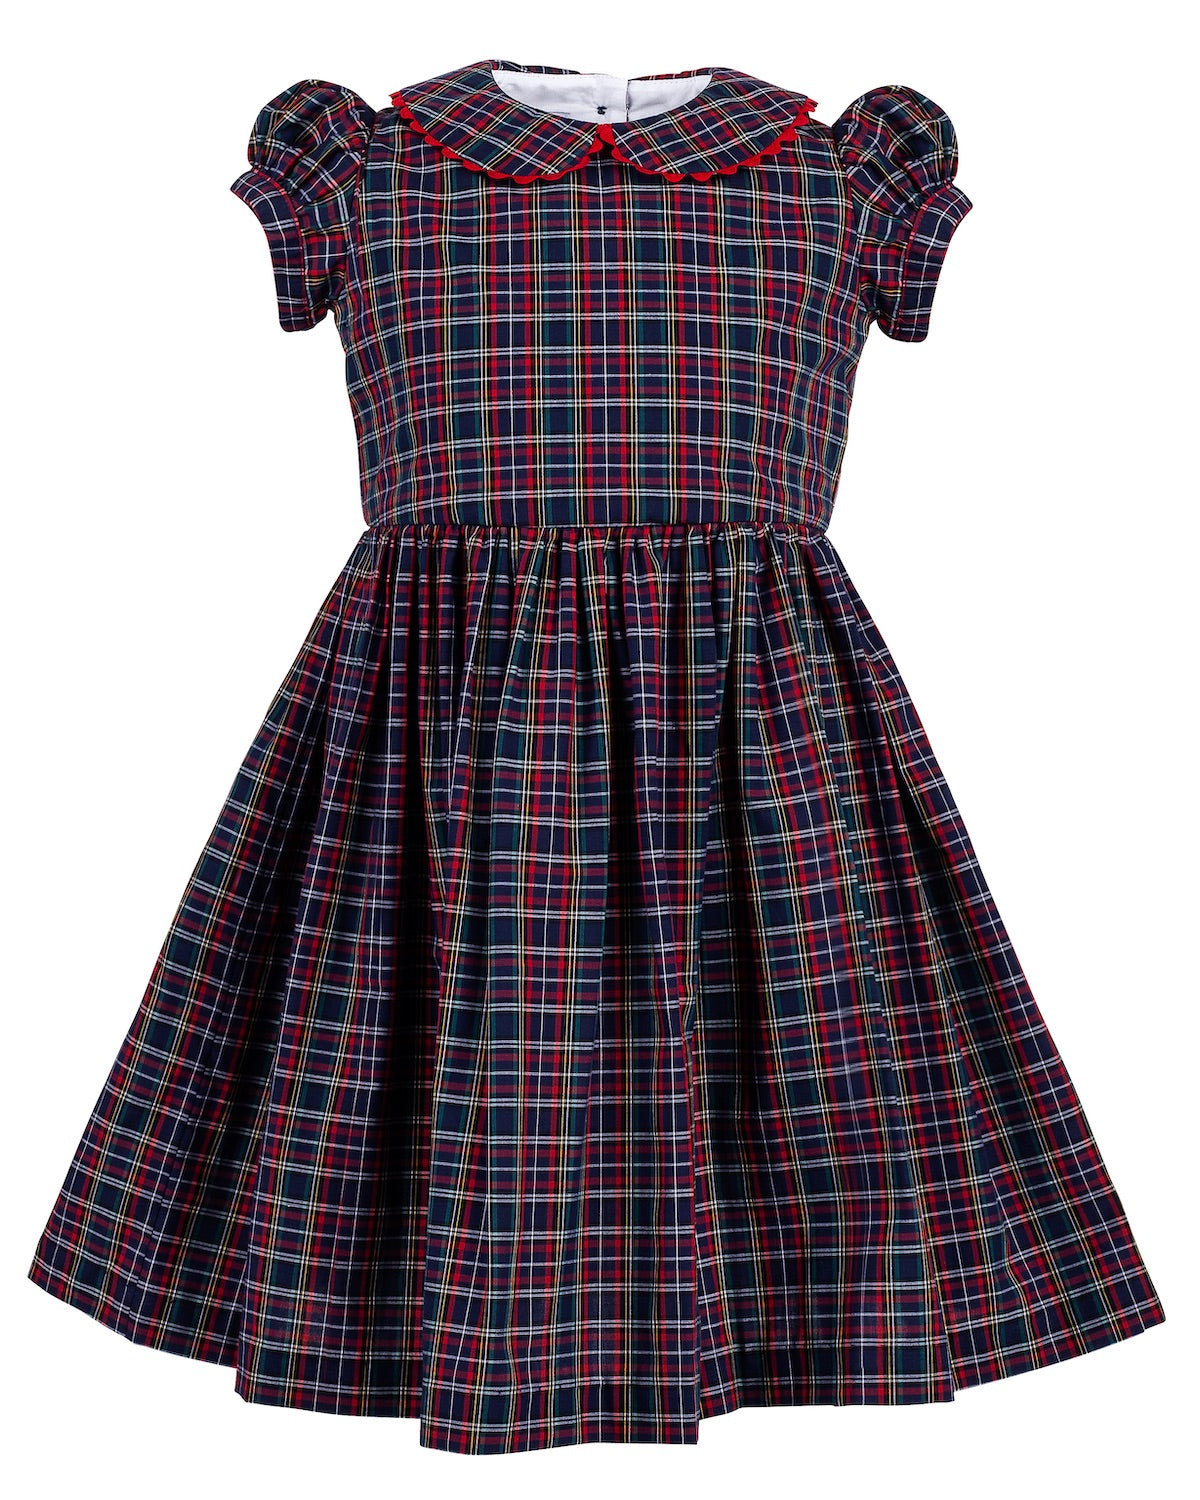 Georgie Dress, Highland Plaid